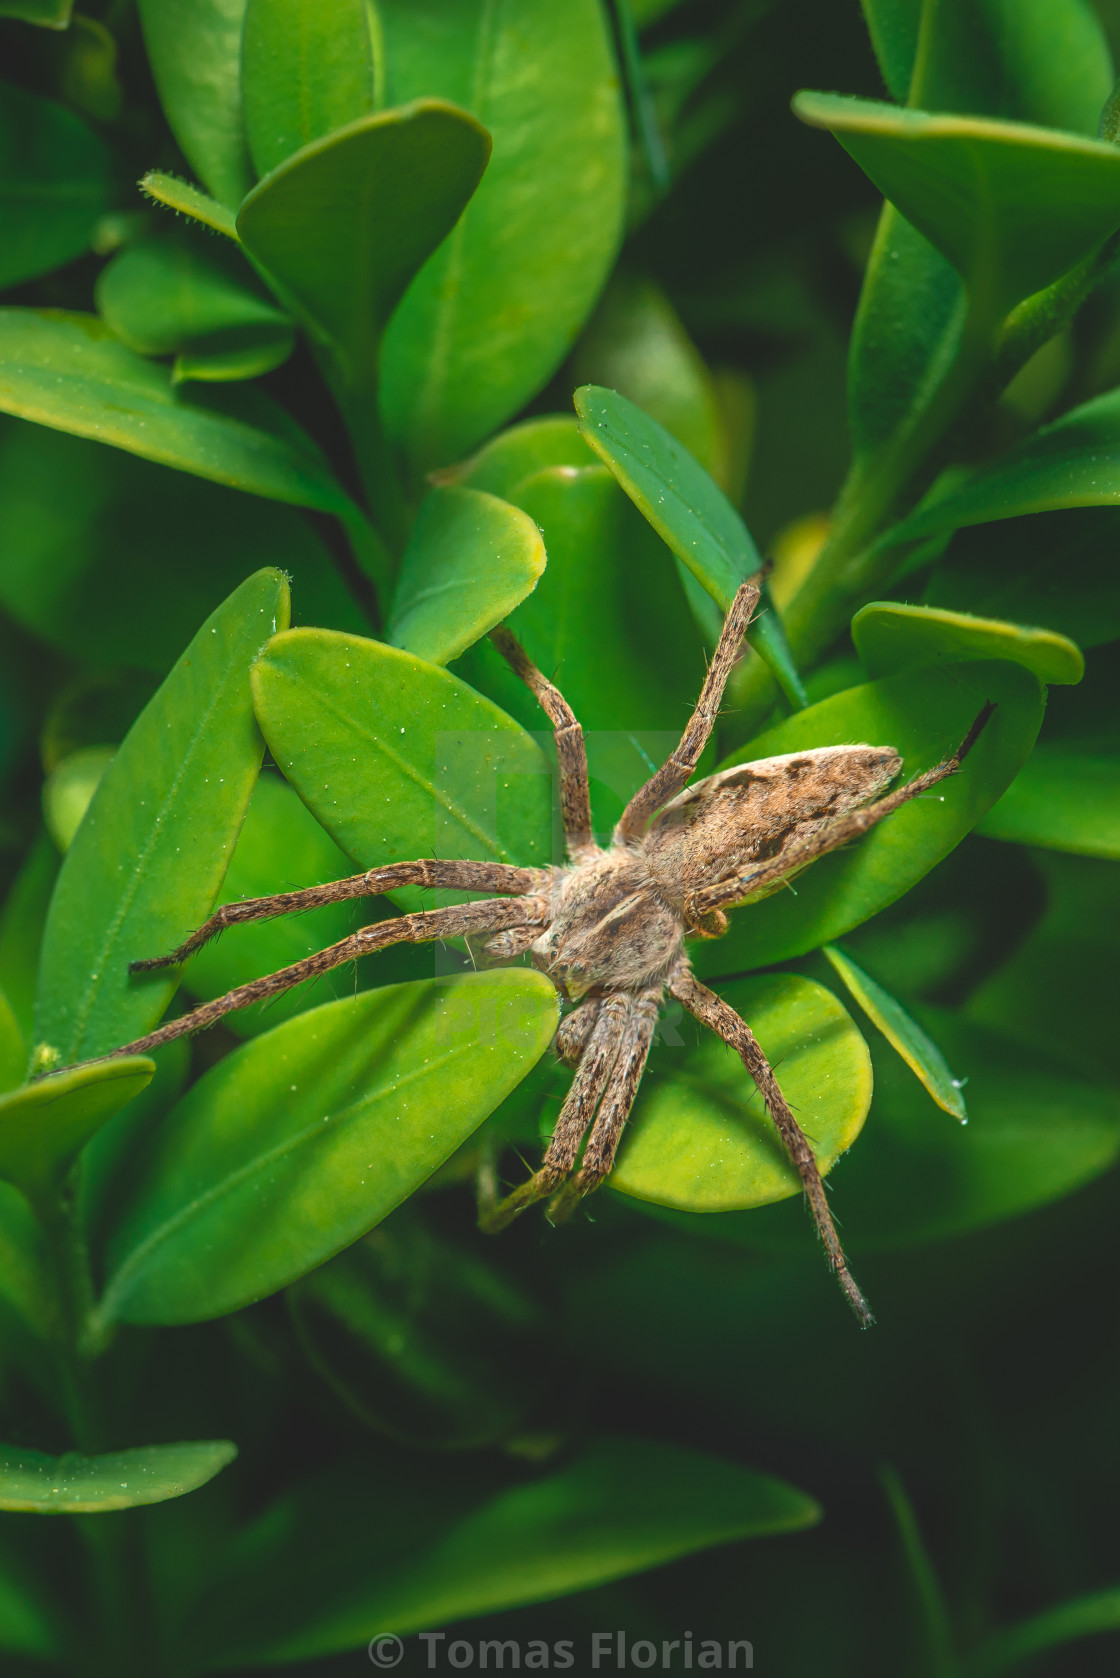 """Brown spider is perched on the plant with many small green leaves"" stock image"